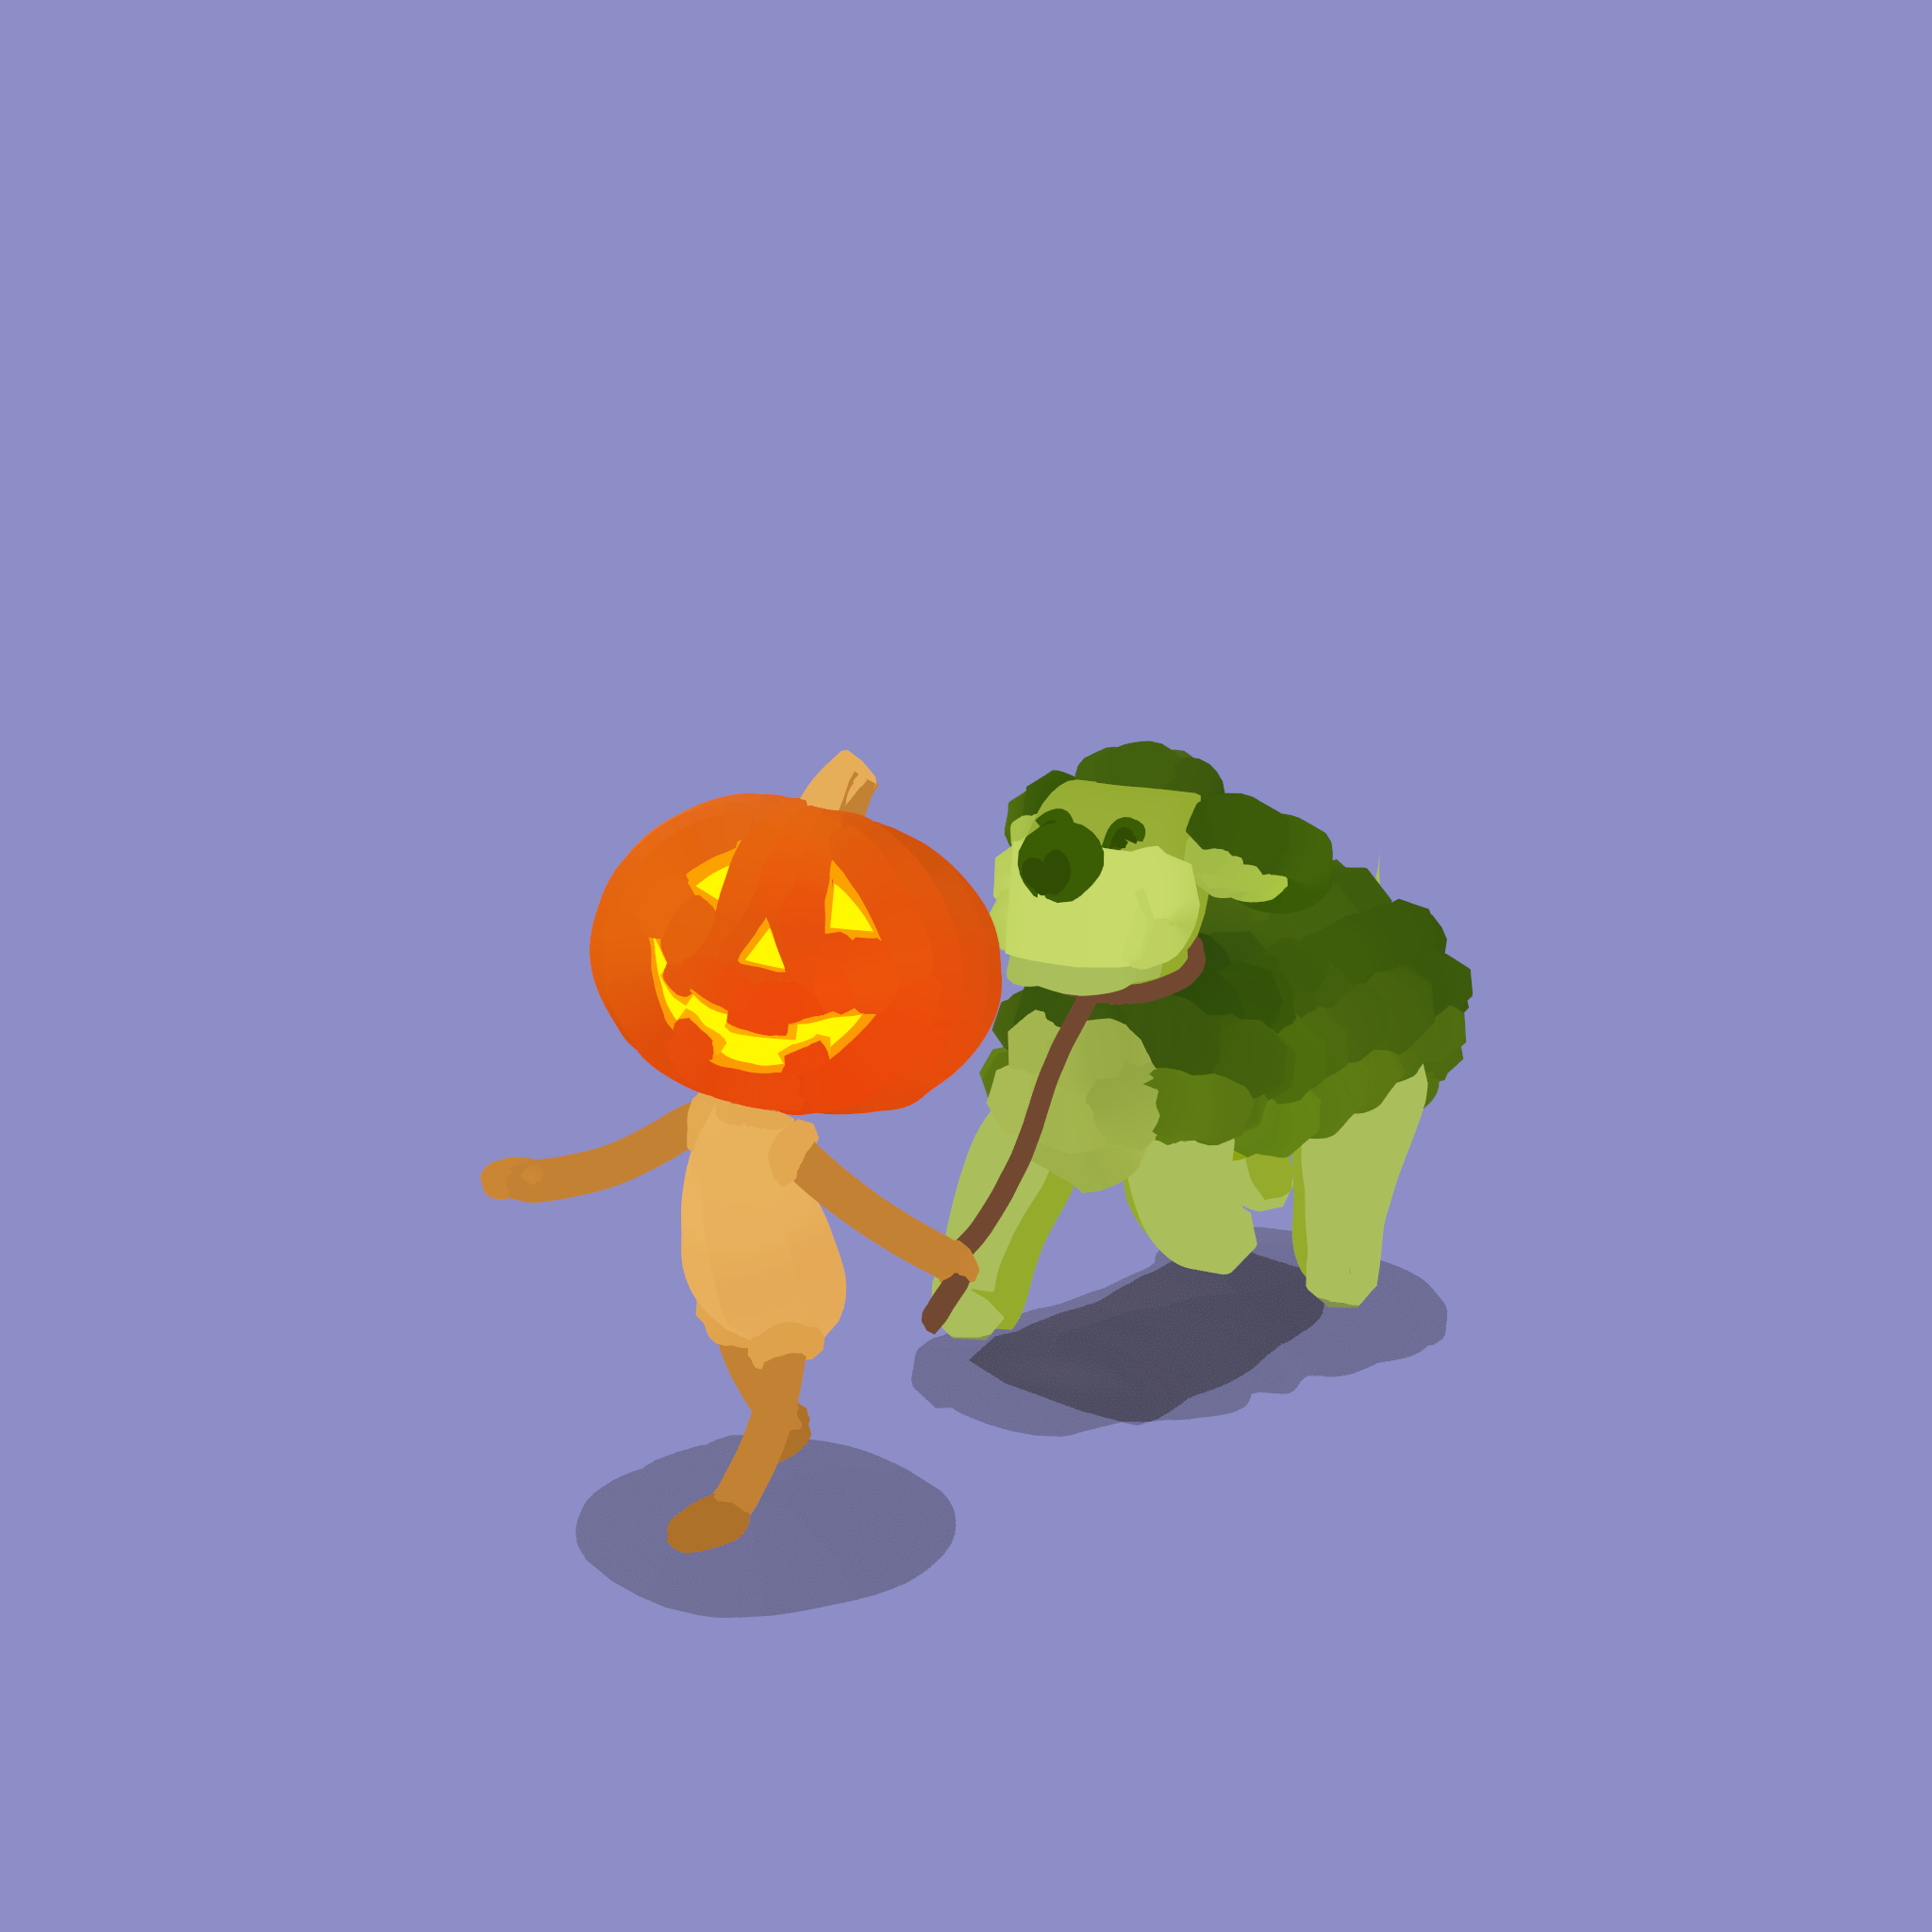 Pumpkin Head and Brocopup